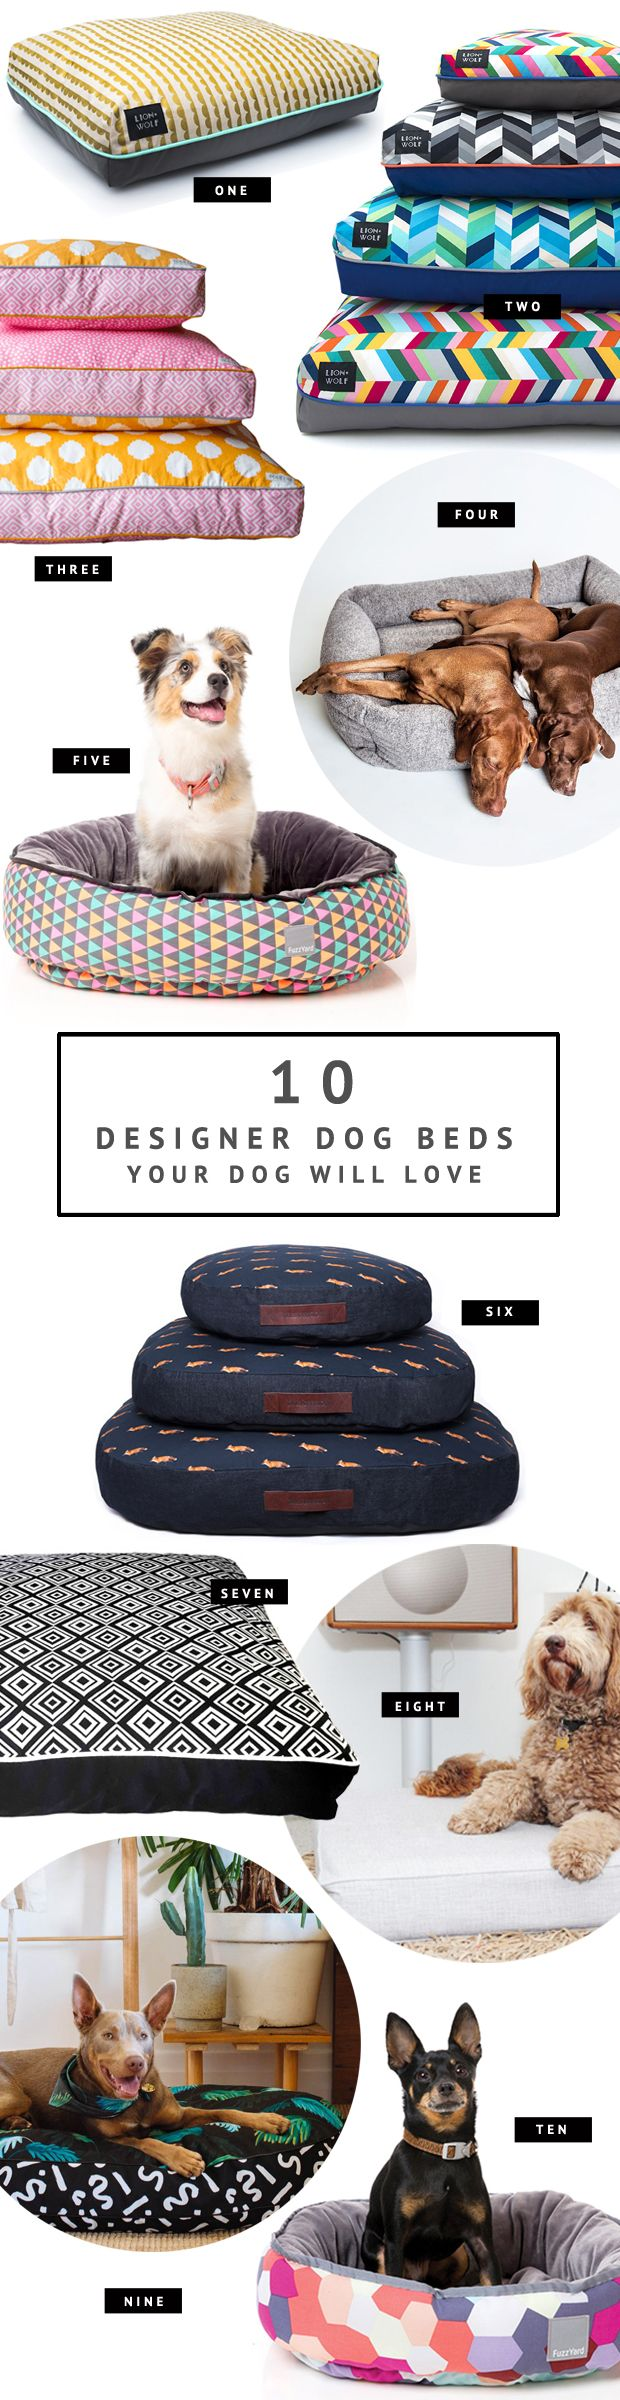 Looking for a dog bed? Browse the very best designer dog beds for every shape and size of dog. Find the perfect bed for your pooch with our handy guide.